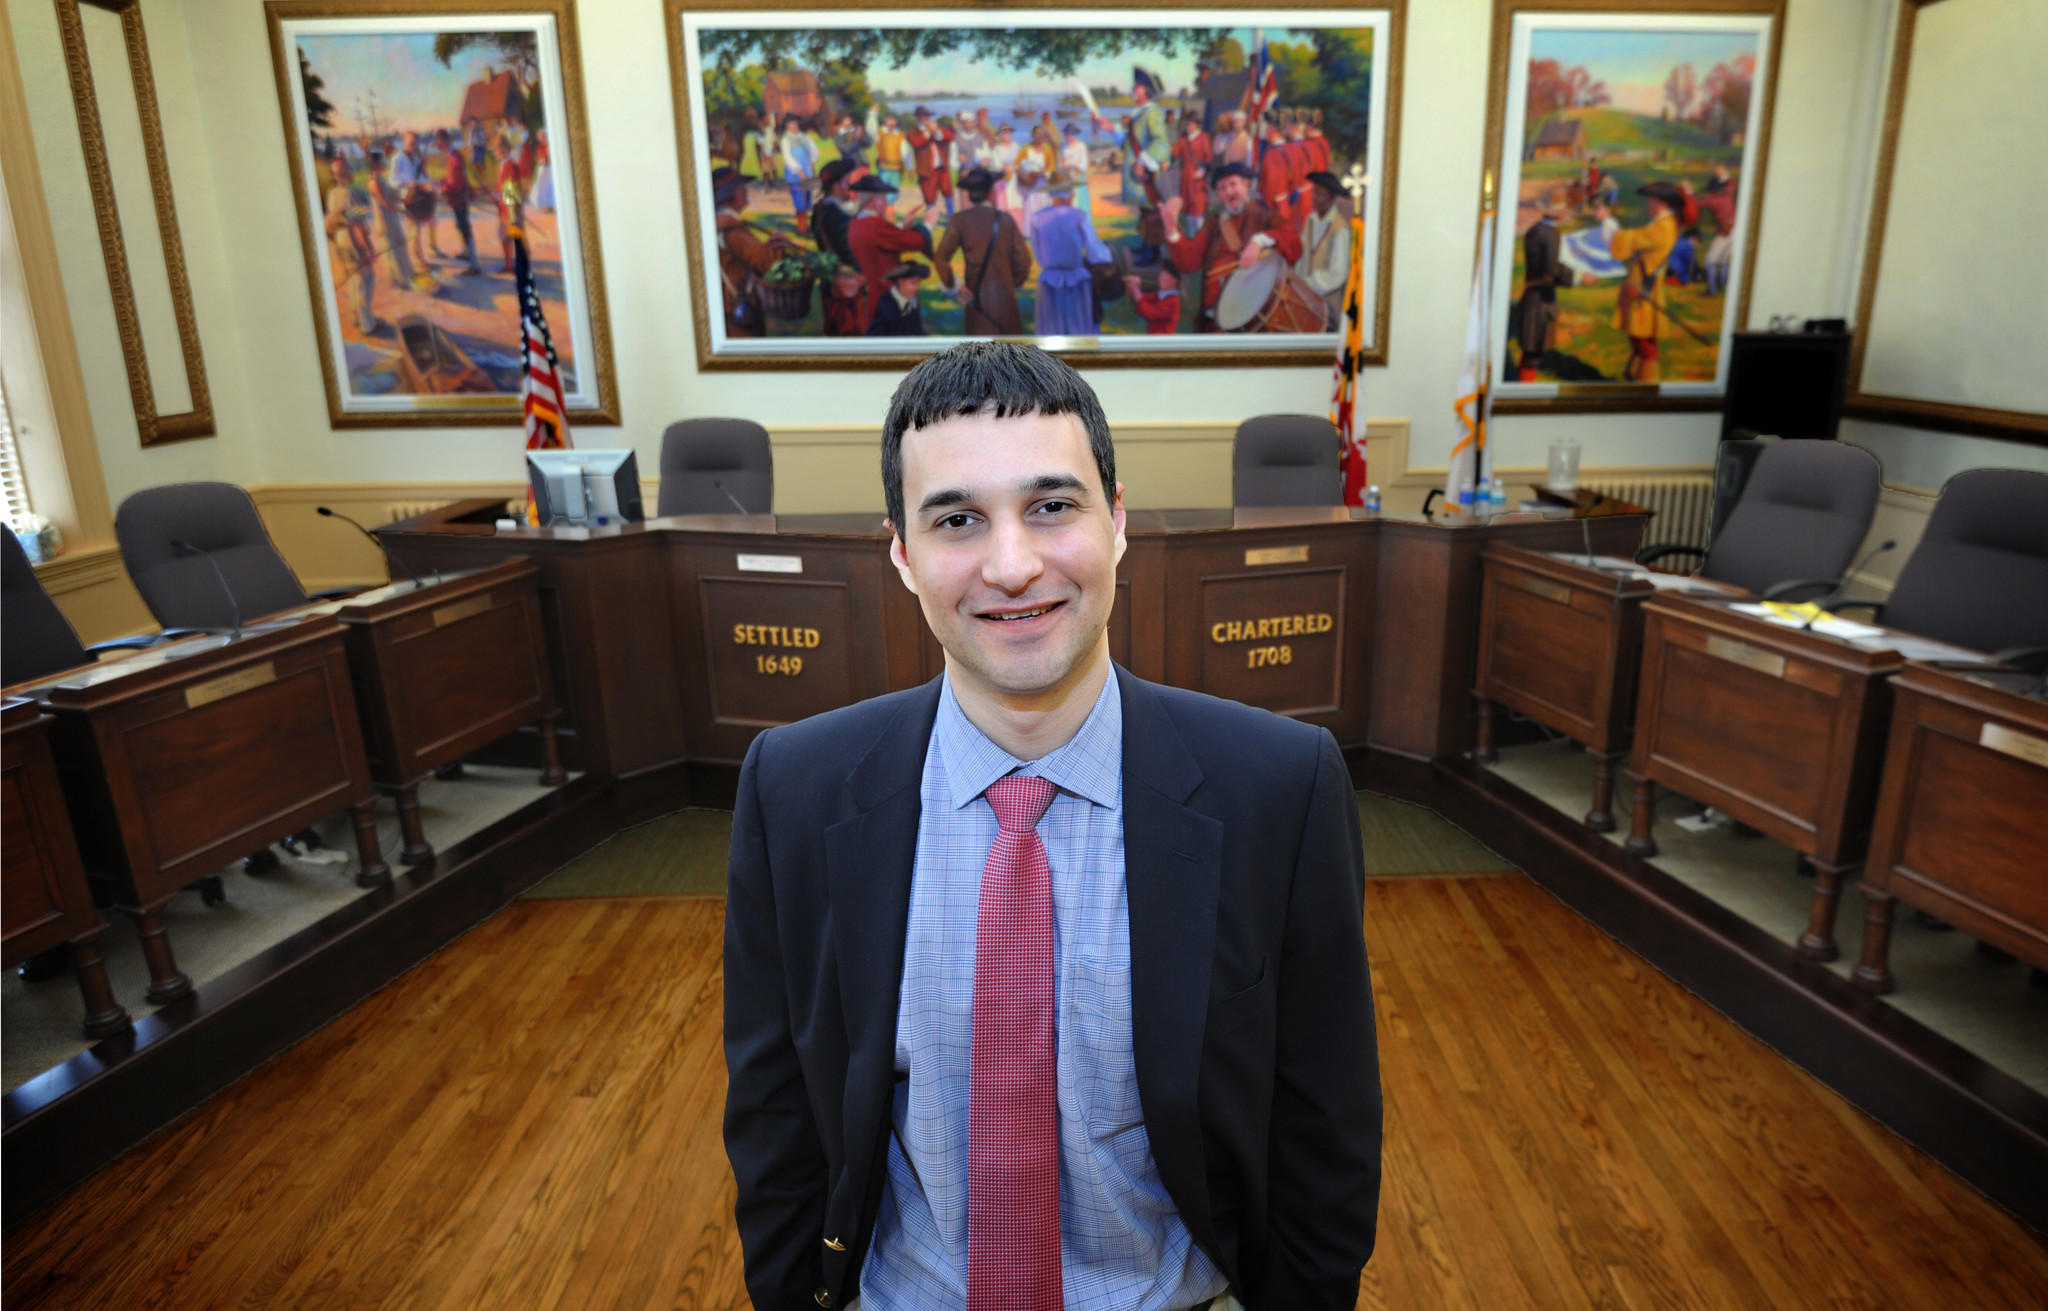 New Annapolis Mayor Mike Pantelides is pictured in council chambers. A Republican in a Democrat-dominated city, has faced a rough road in his first four months in office.